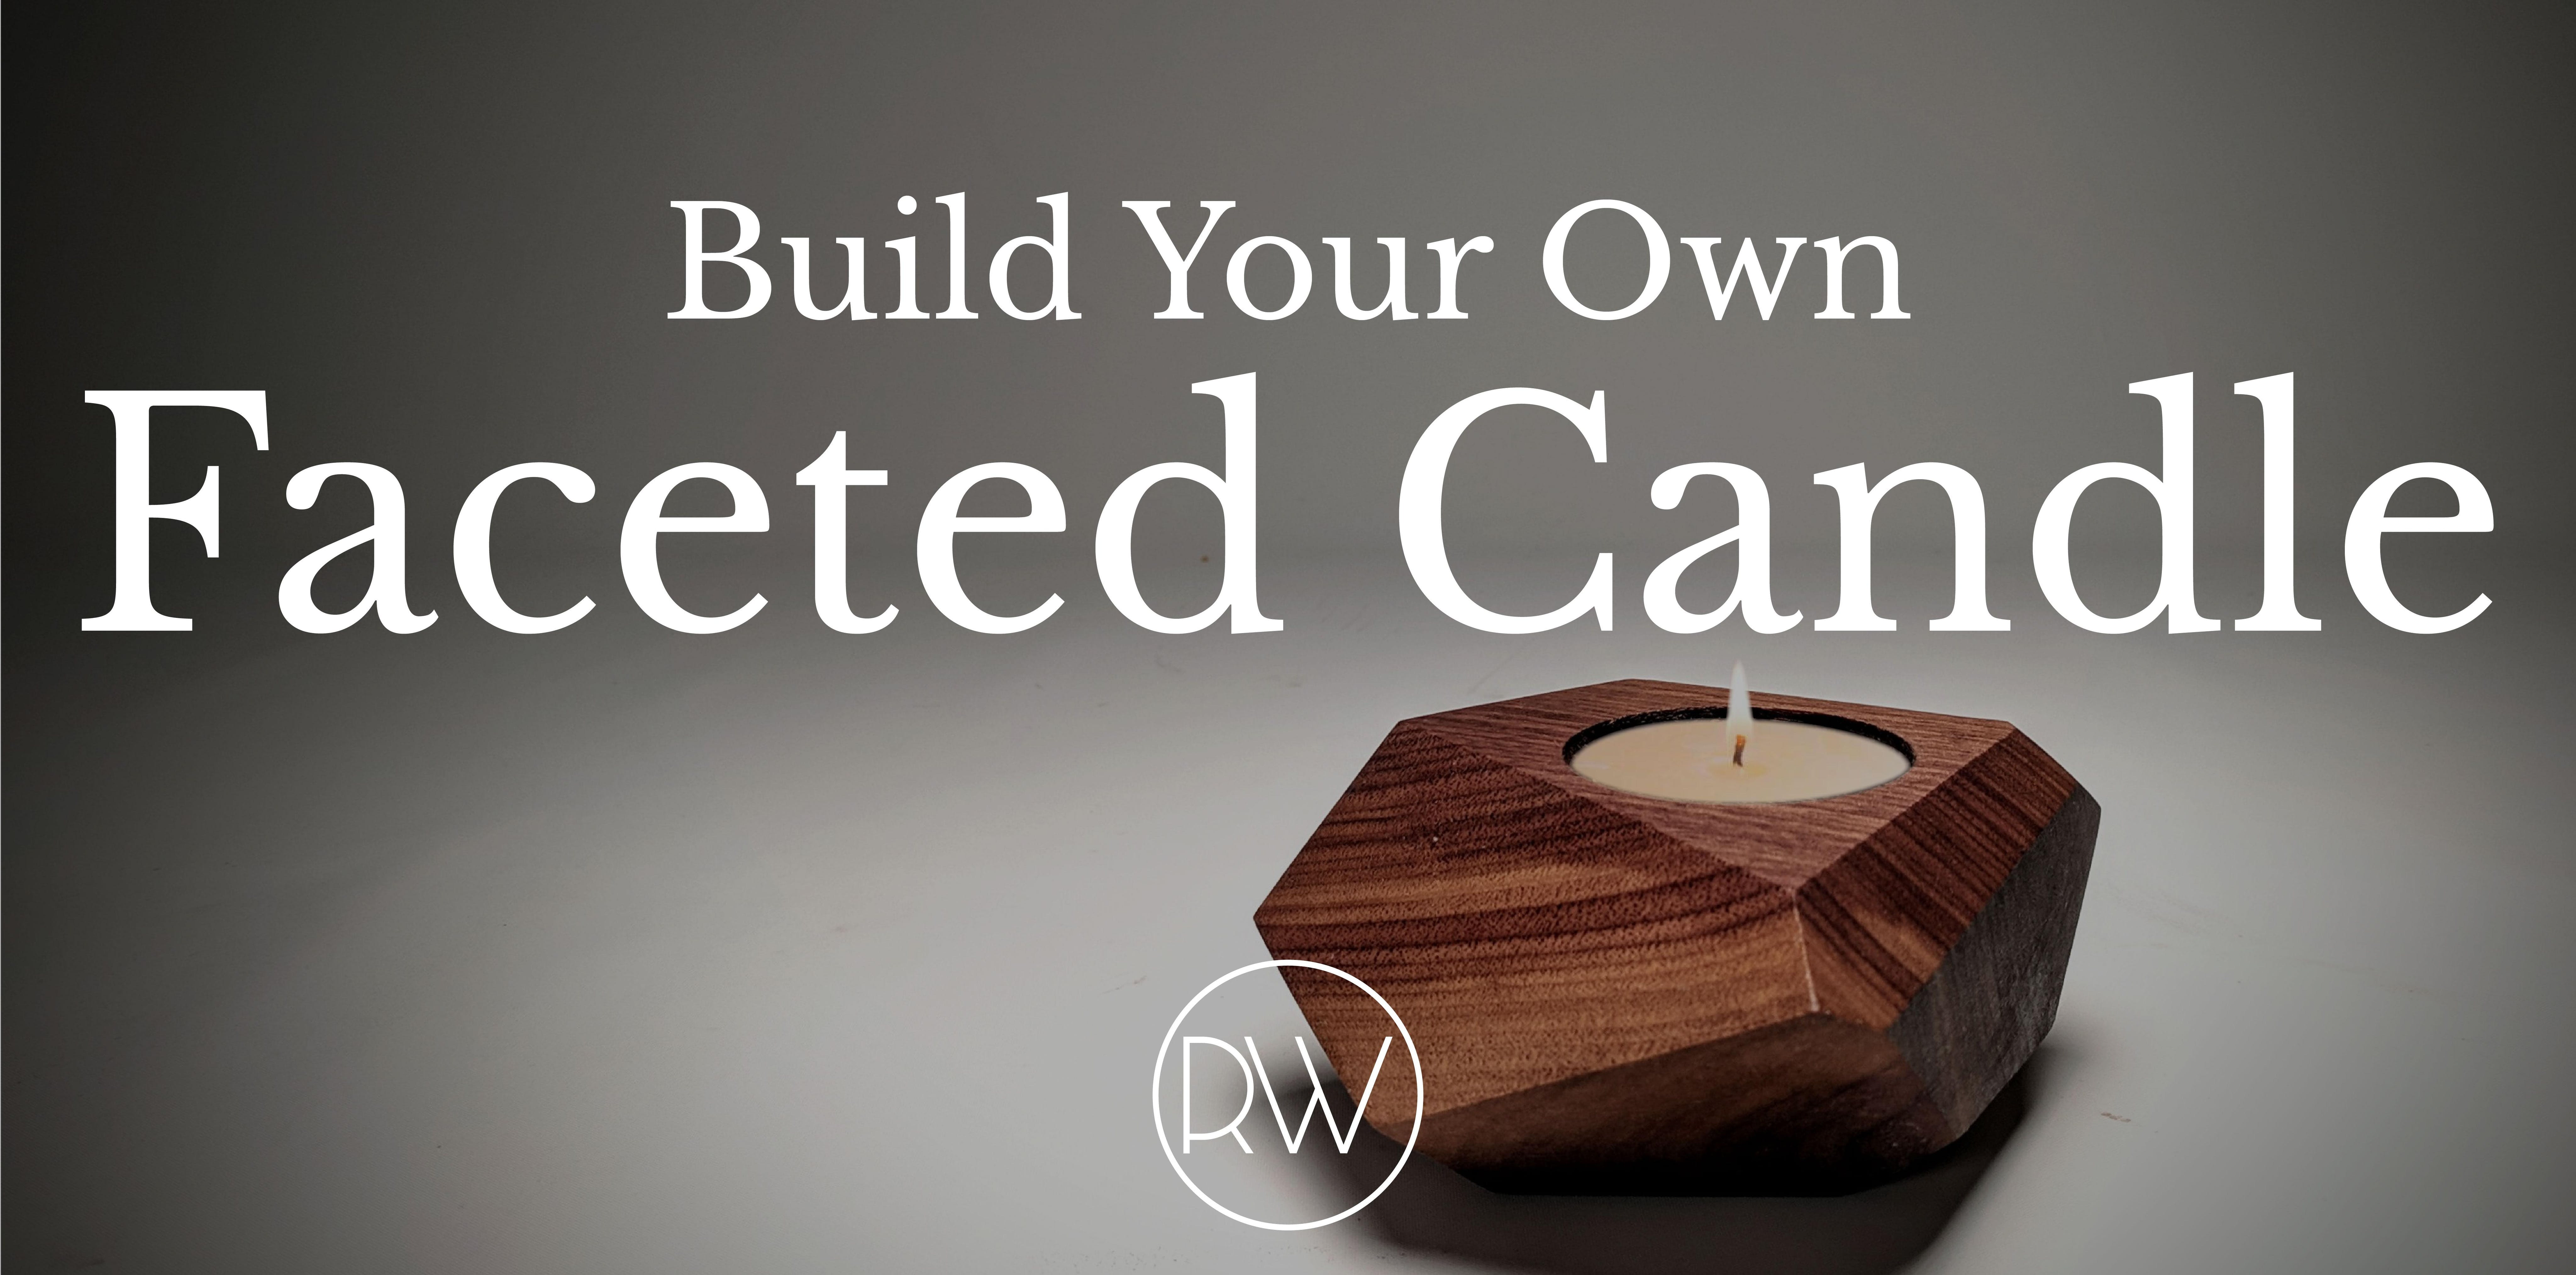 Build Your Own Faceted Candle